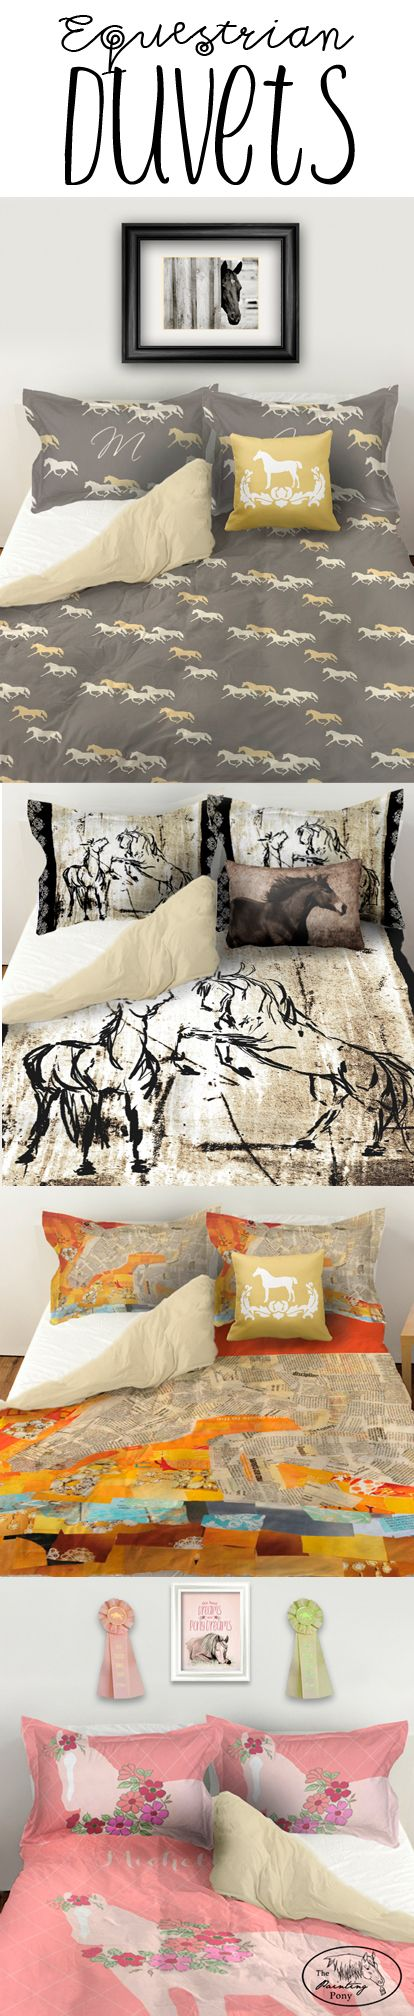 Duvet Bedding sets for the equestrian horse lover's bedroom decor. Available in twin, queen, or kind size bed covers with matching horse pillow shams. Cute and whimsical to styish, classy and chic equestrian home decor.